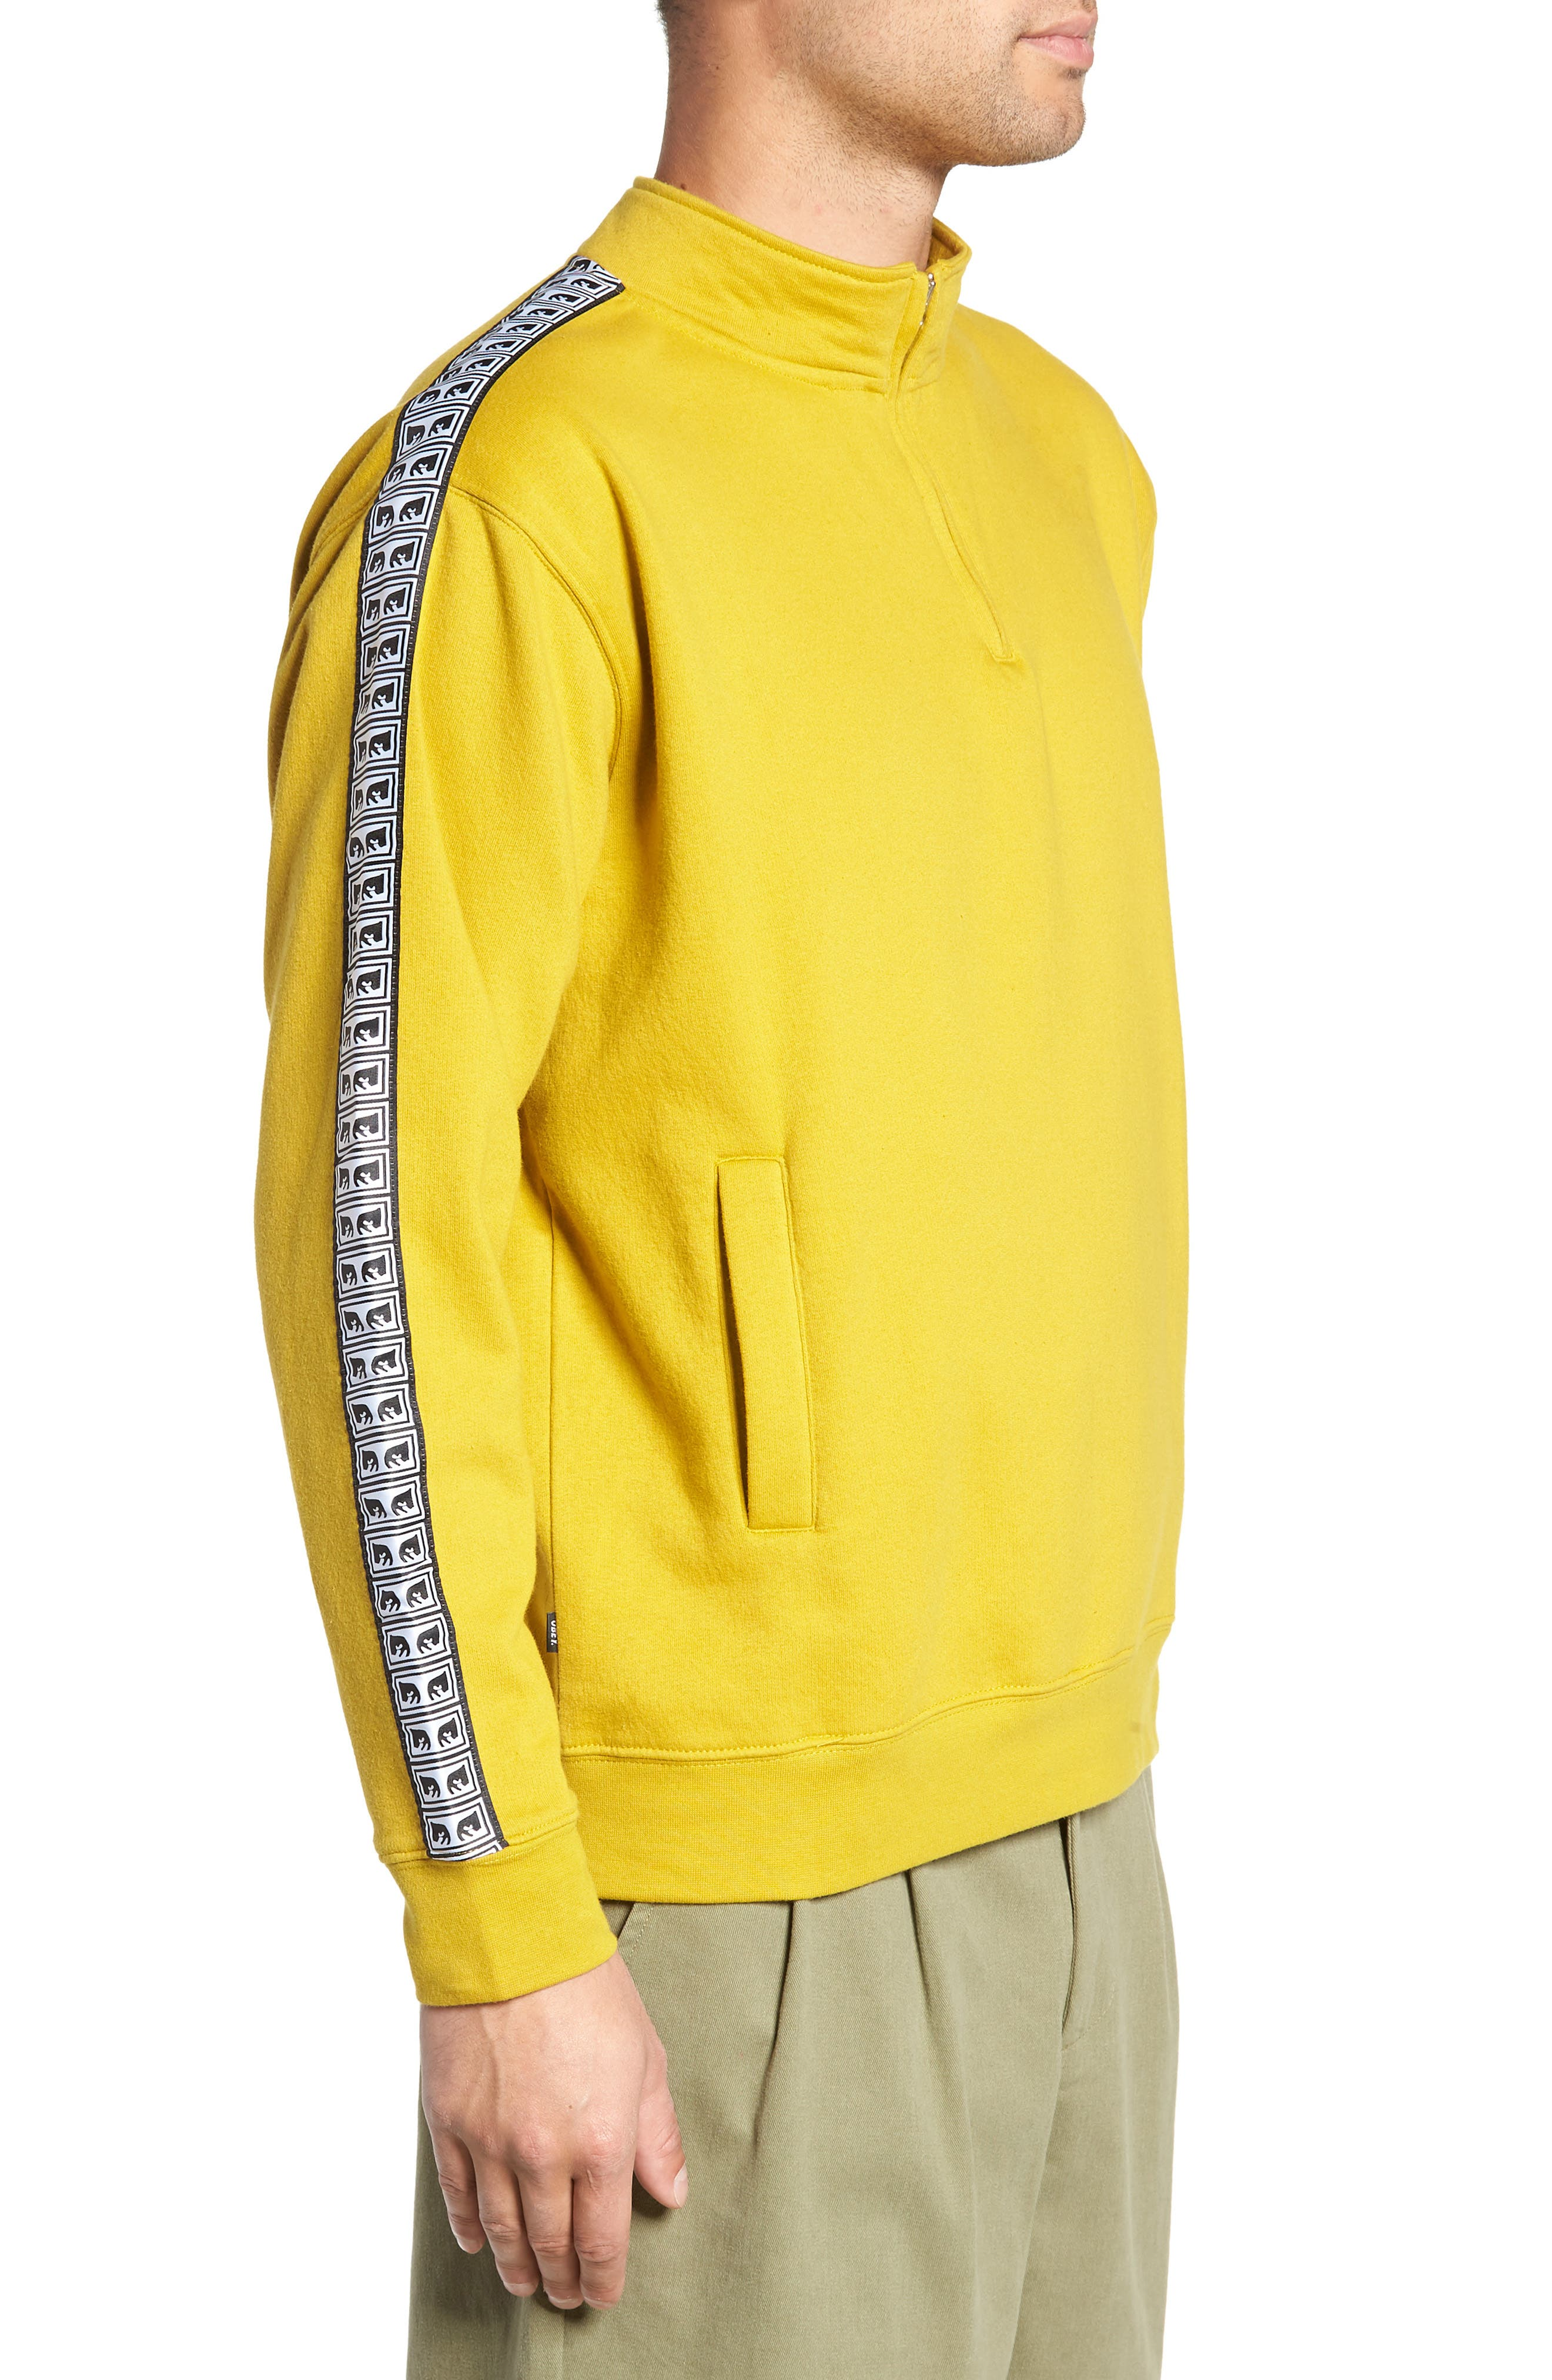 OBEY, Bridges Logo Tape Quarter Zip Pullover, Alternate thumbnail 3, color, 700